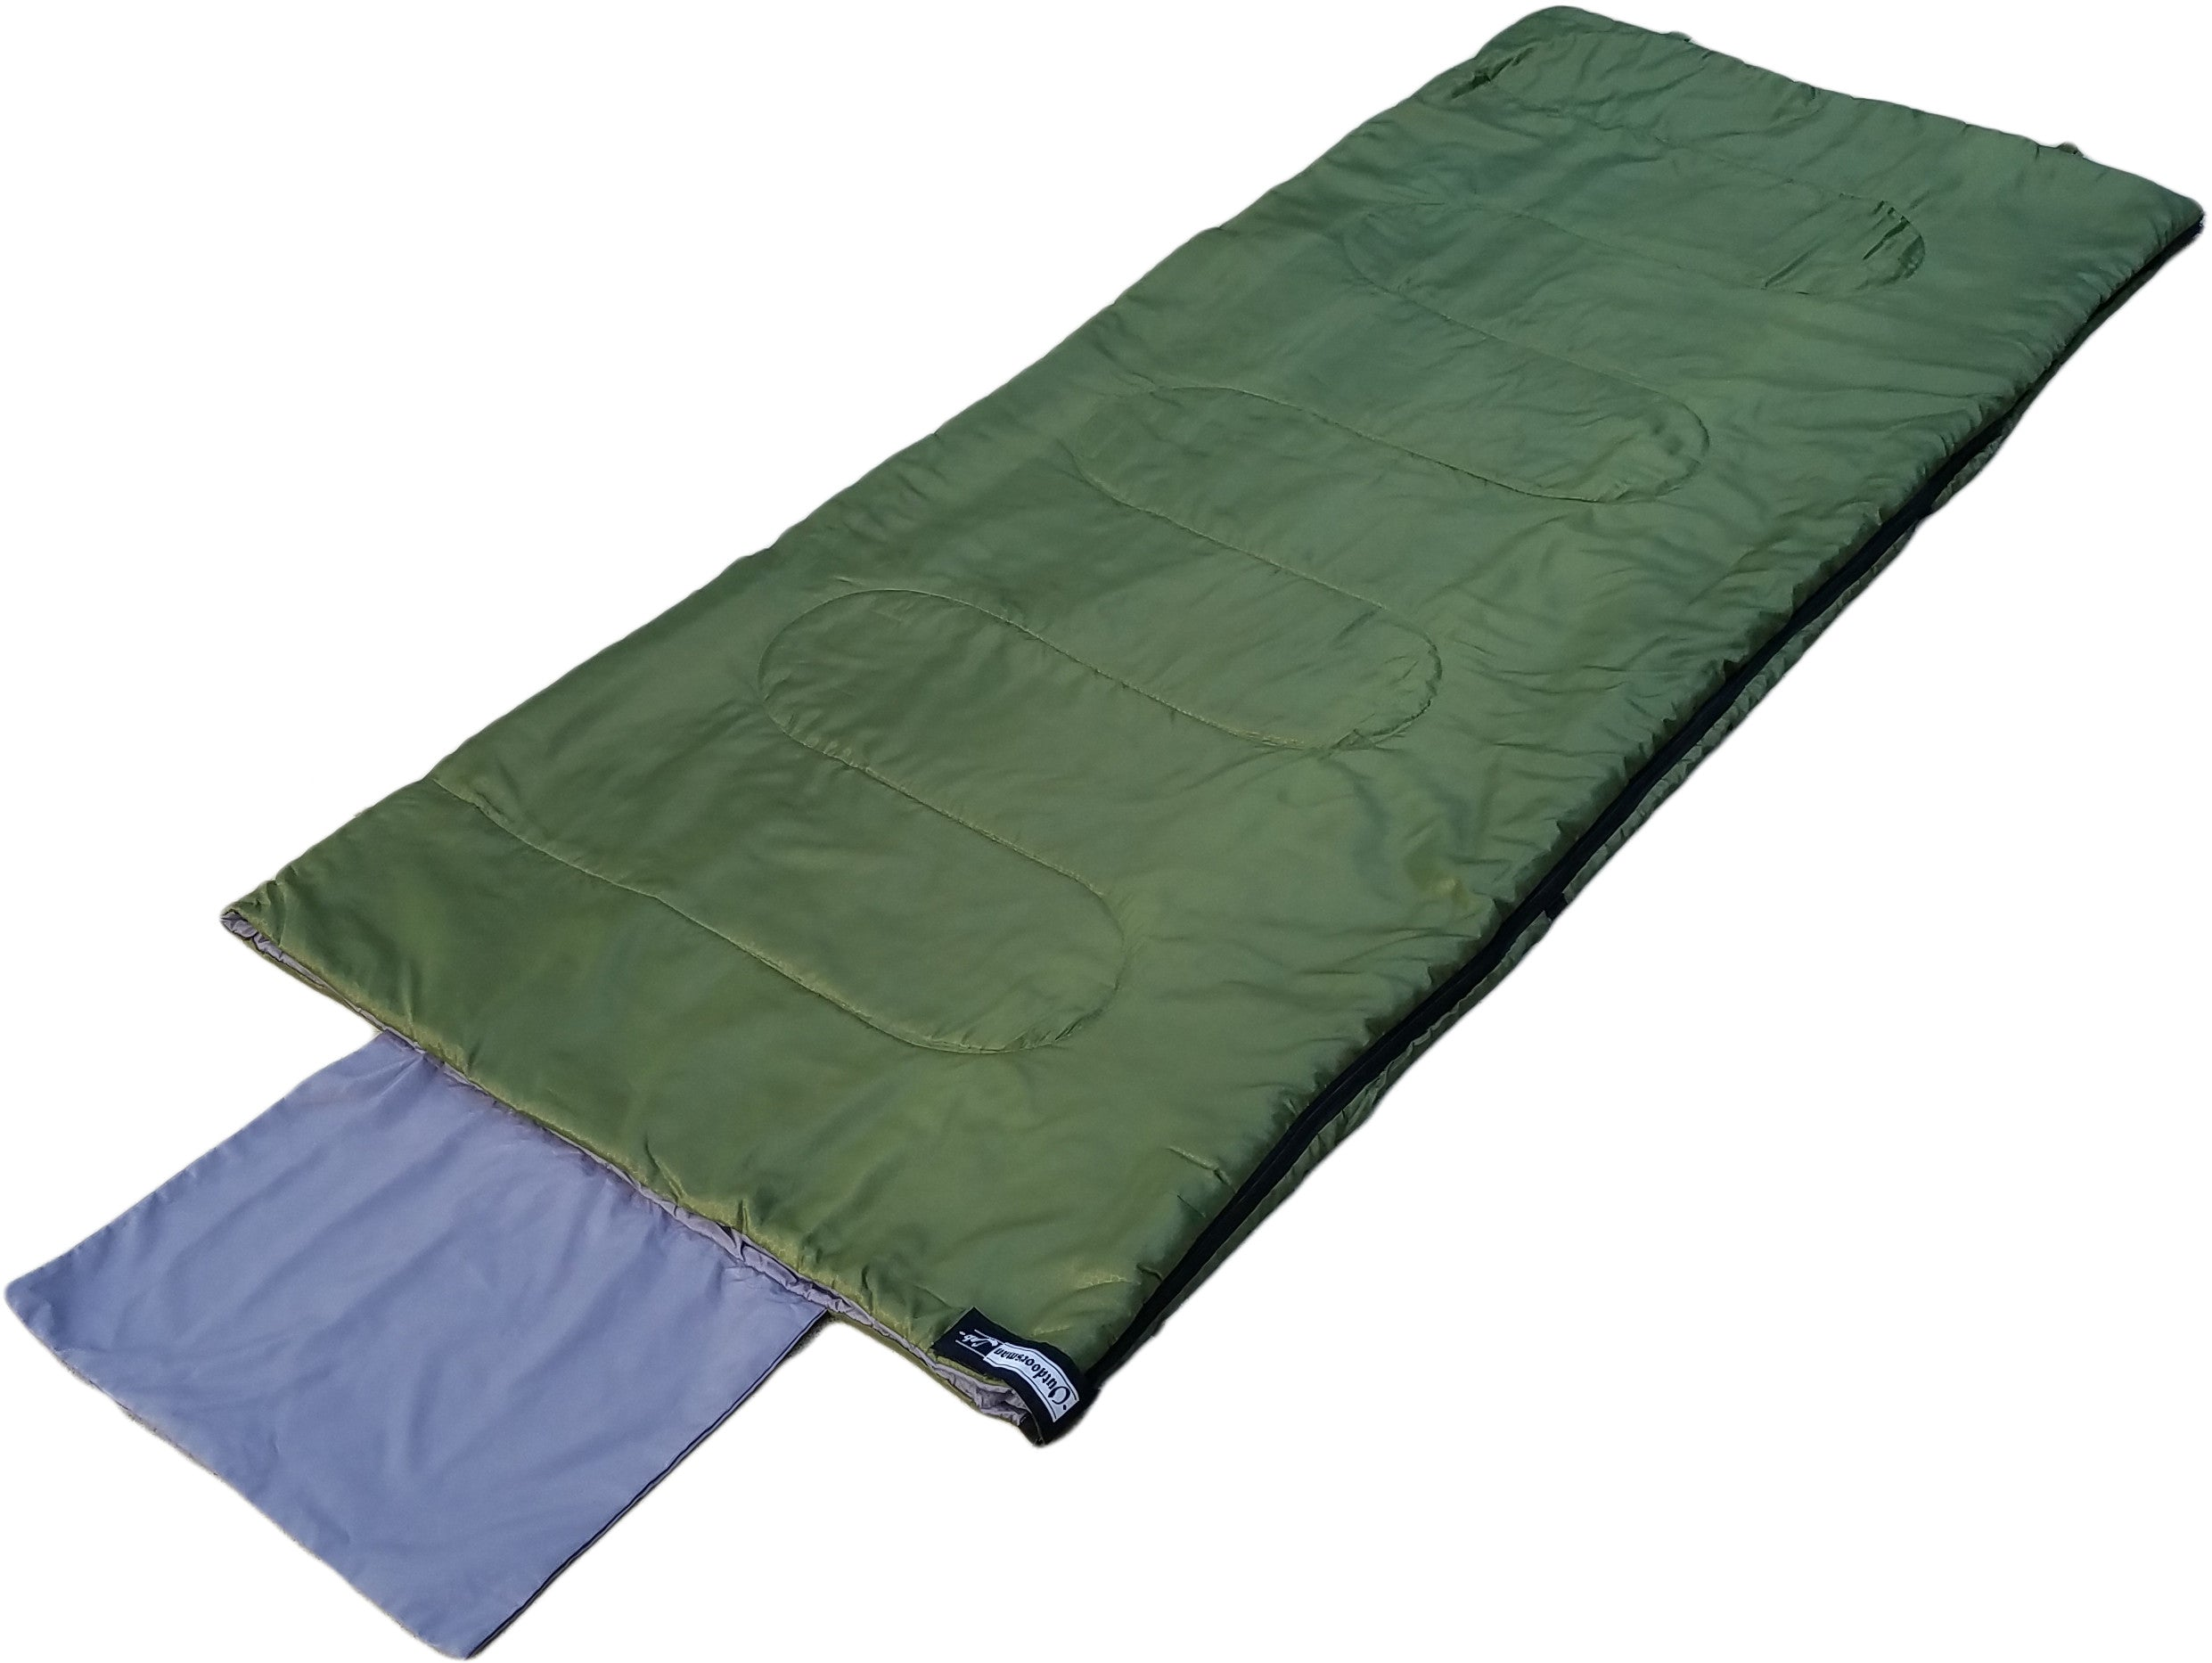 Lightweight Sleeping Bag - OutdoorsmanLab